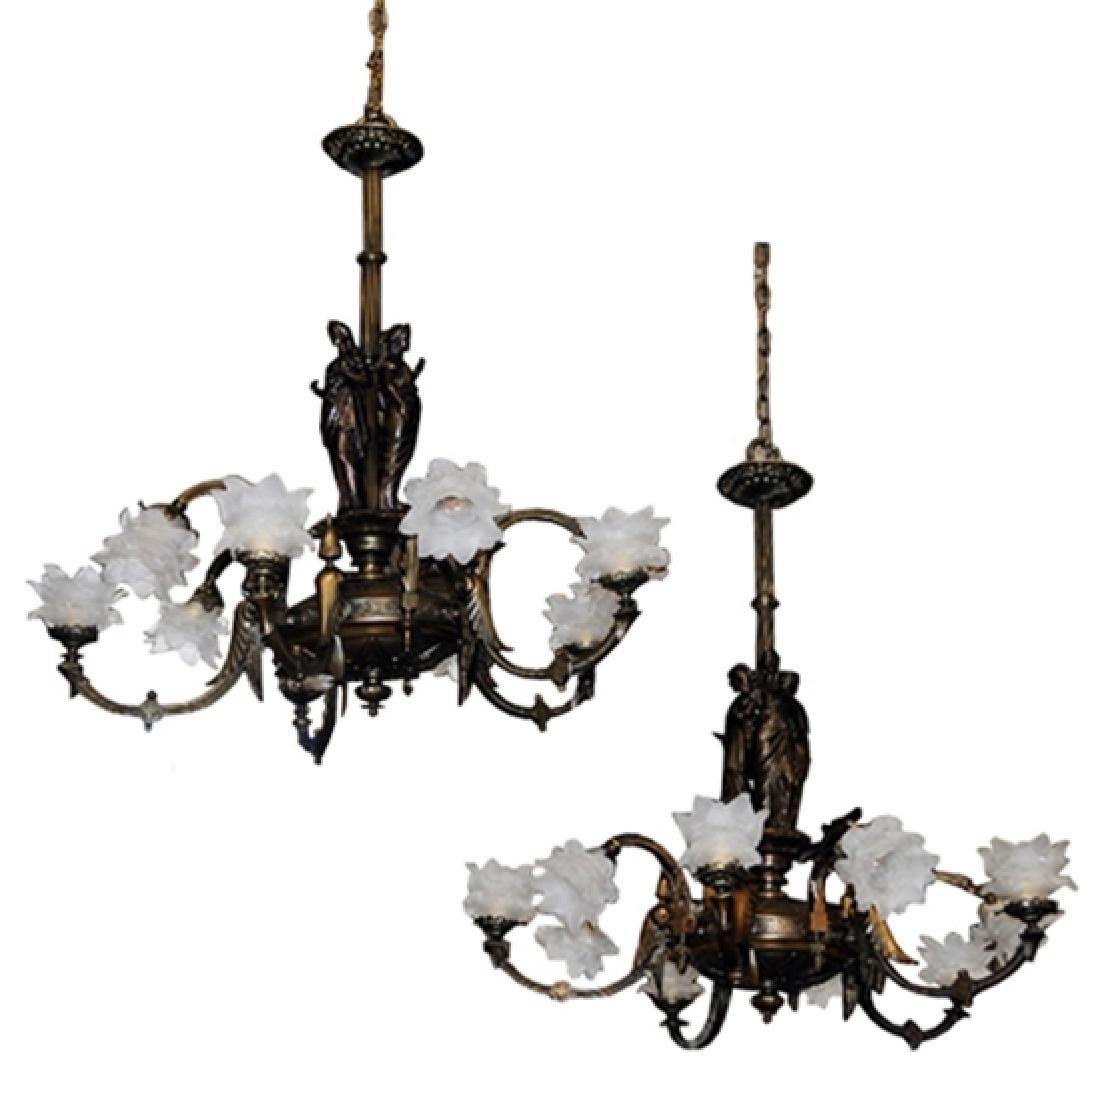 Pair of Antique 19th C. Bronze Figural Gas Chandeliers